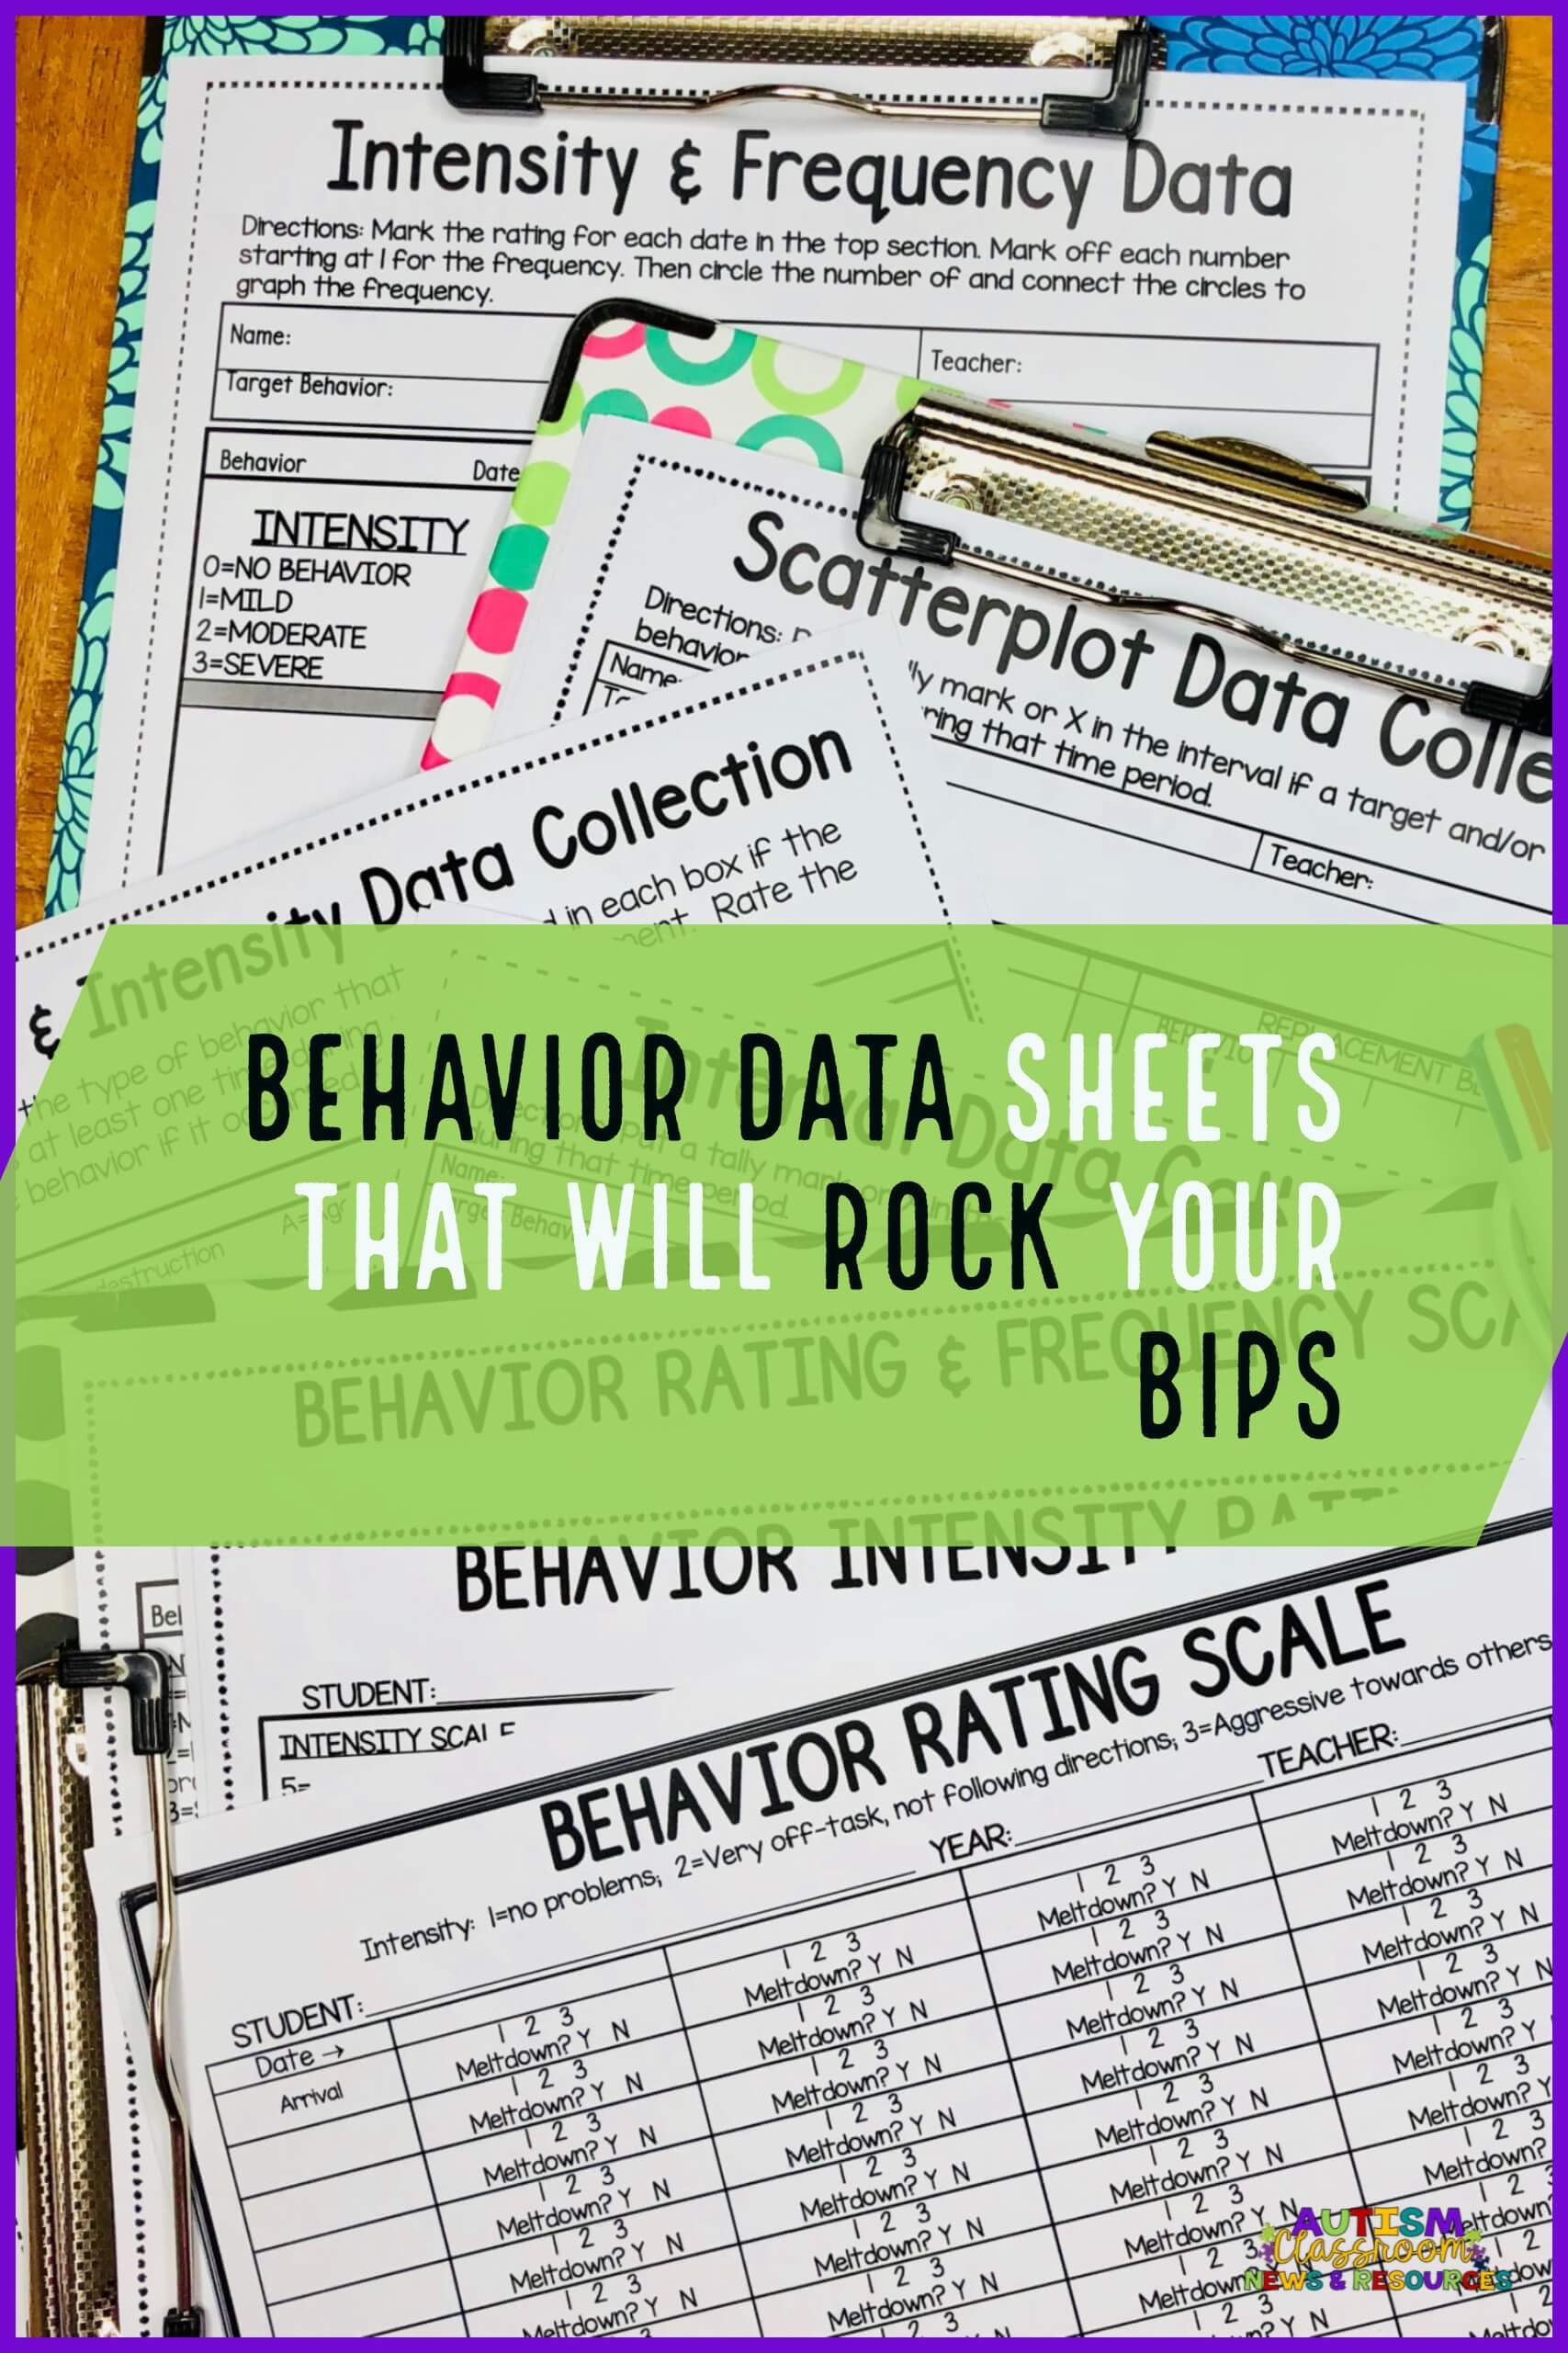 Rating scales are a lifesaver when it comes to tracking problem behavior for a behavior support plan. They can help you figure out whether the severity is getting better or worse and they are easy to use. This post has tons of examples of rating scales and behavior data sheets that will make a special education teacher's life so much easier!!